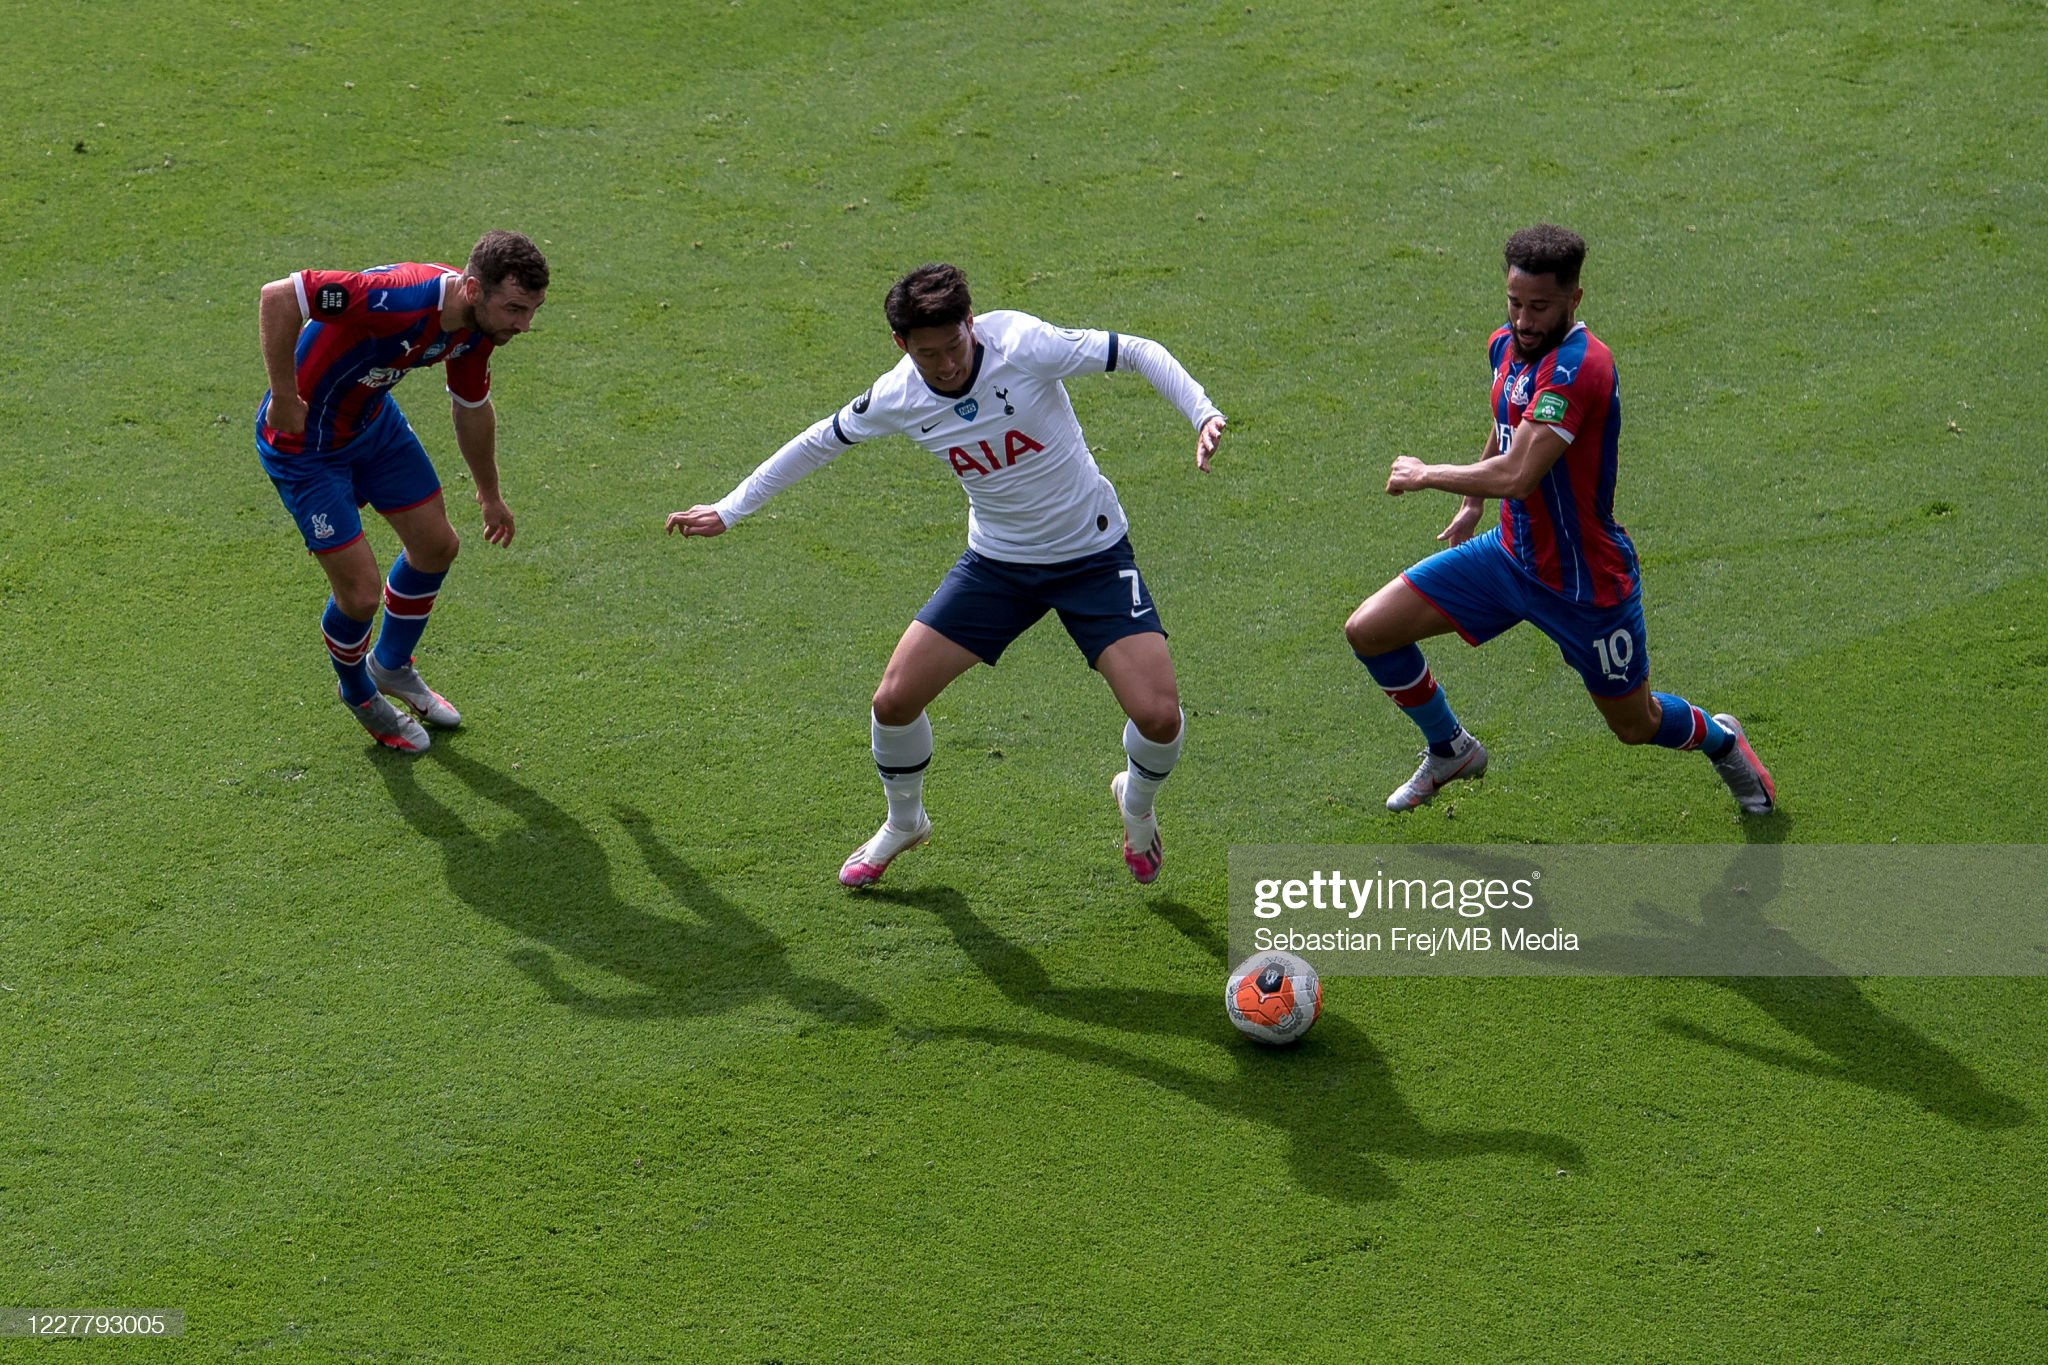 Crystal Palace vs Tottenham Preview, prediction and odds